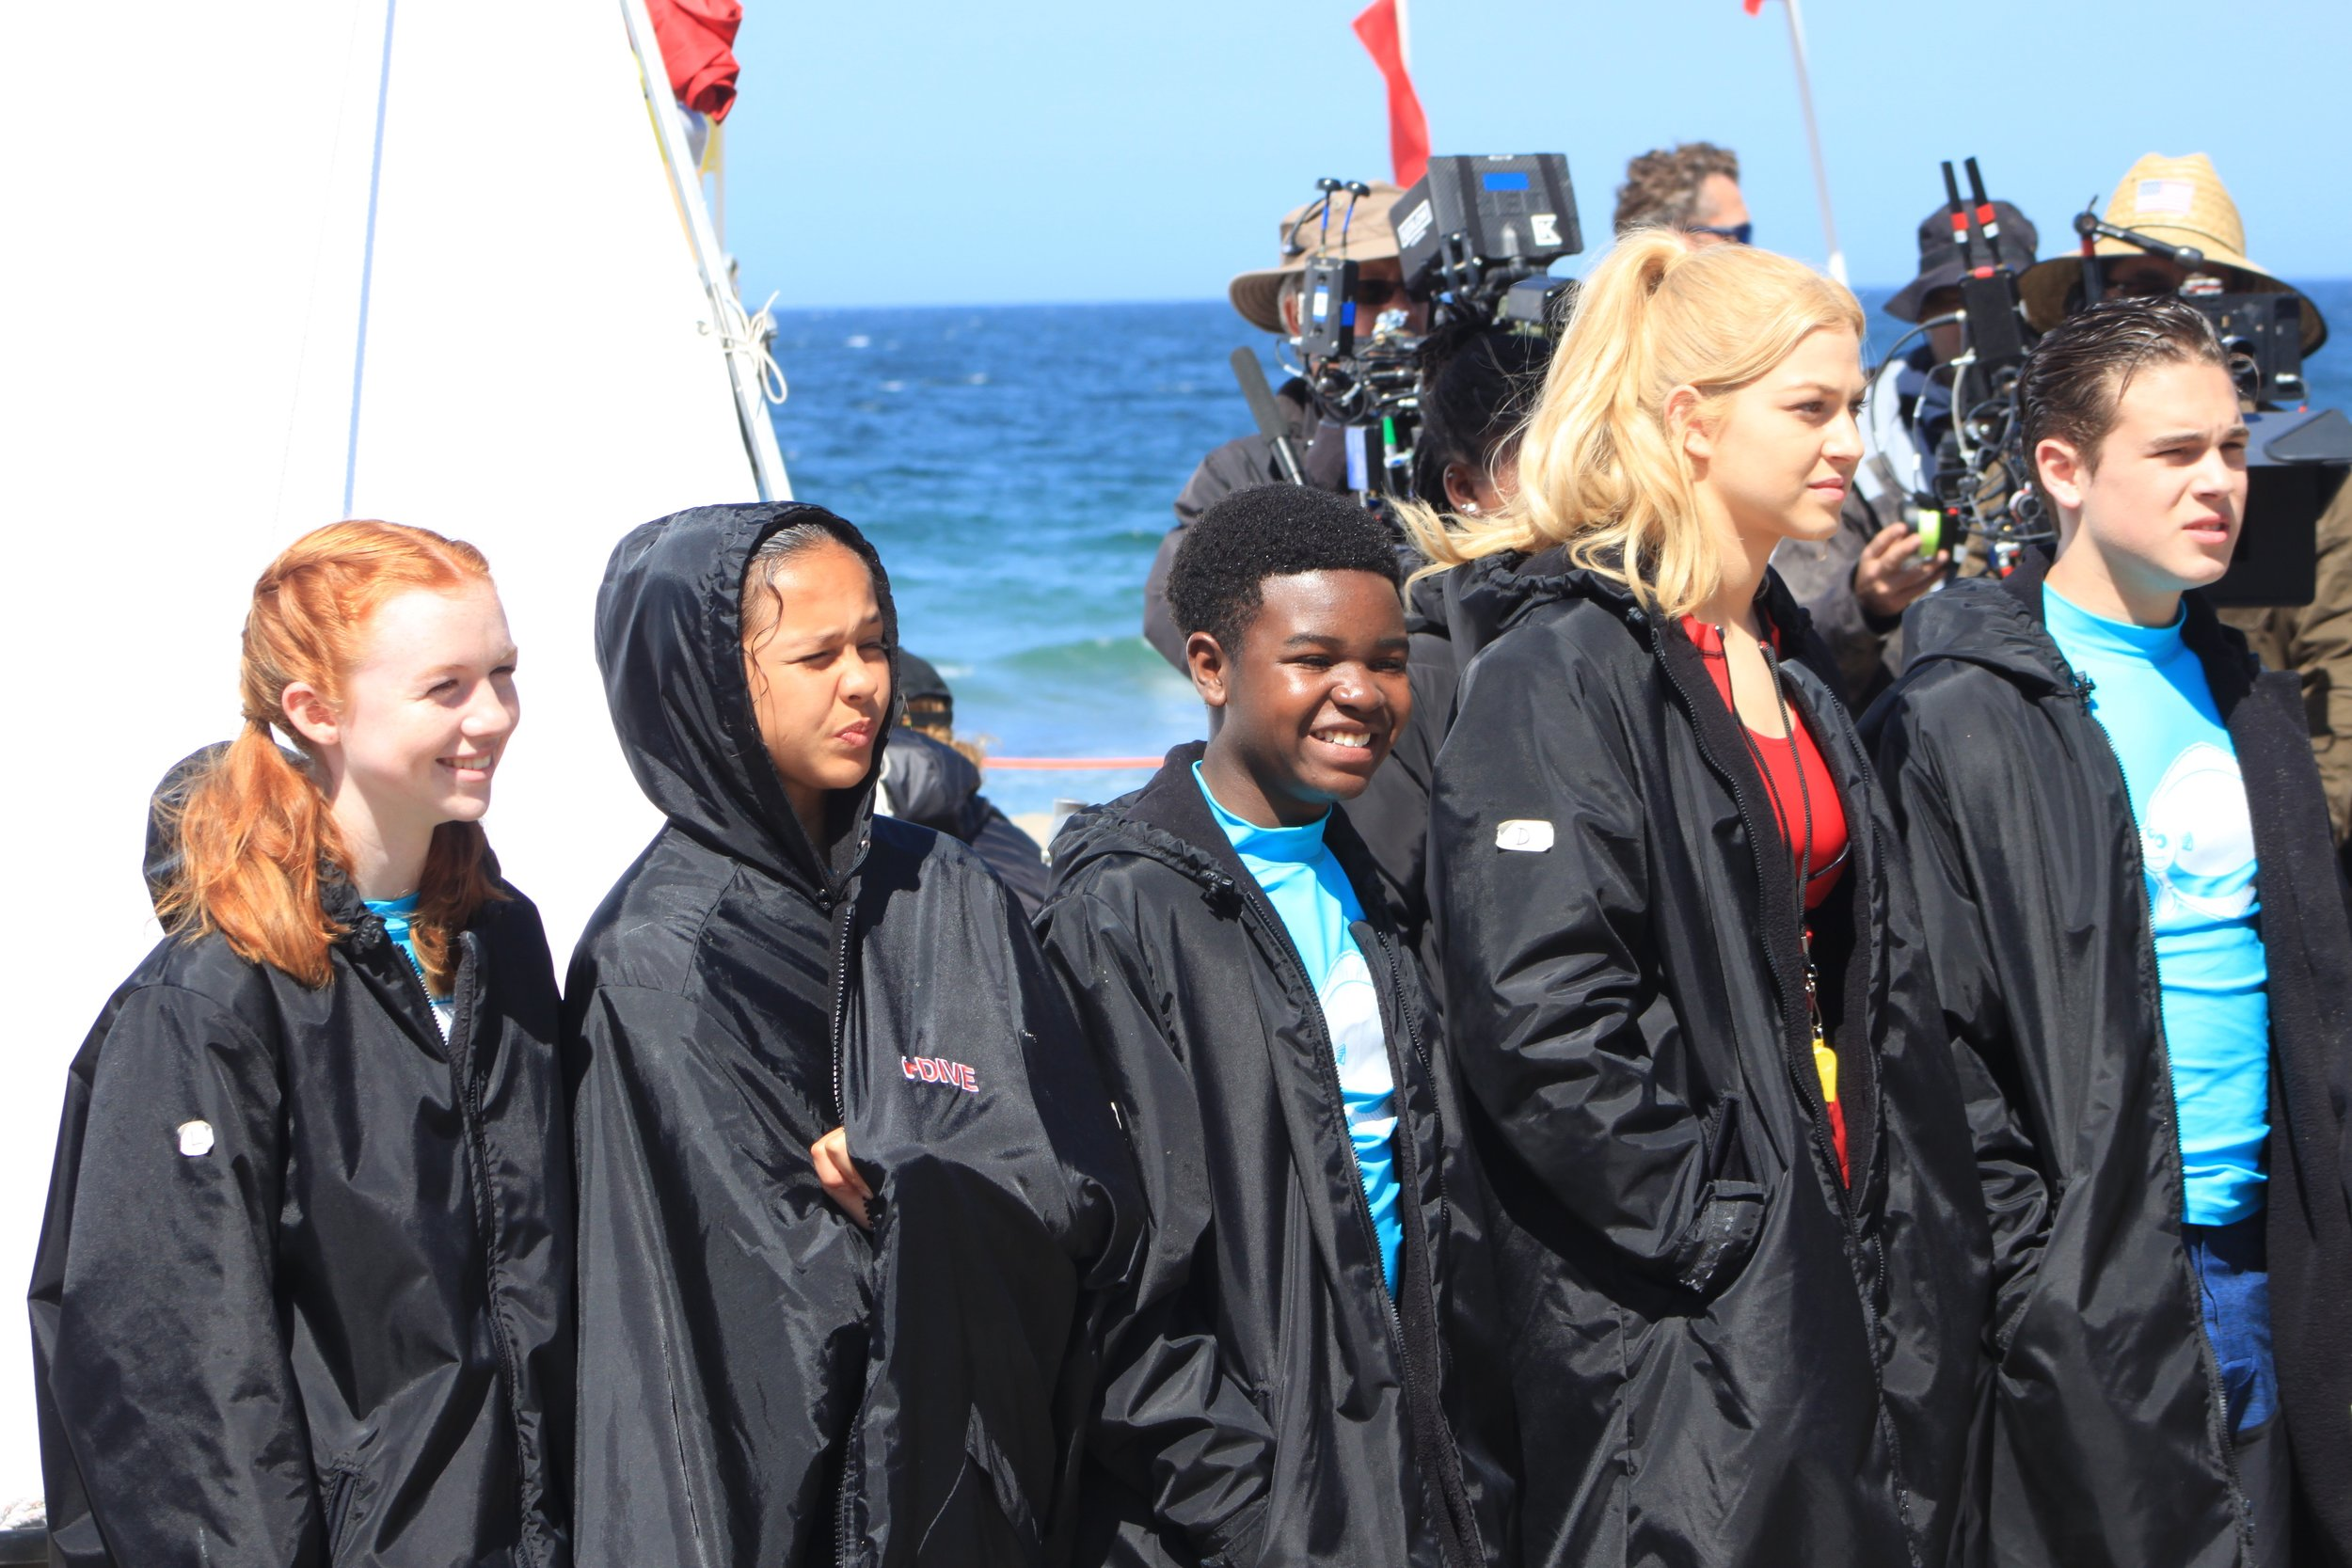 Brunson (center) with (from left) Abby Donnelly, Breanna Yde, Jackie R. Jacobson, and Ricardo Hurtado